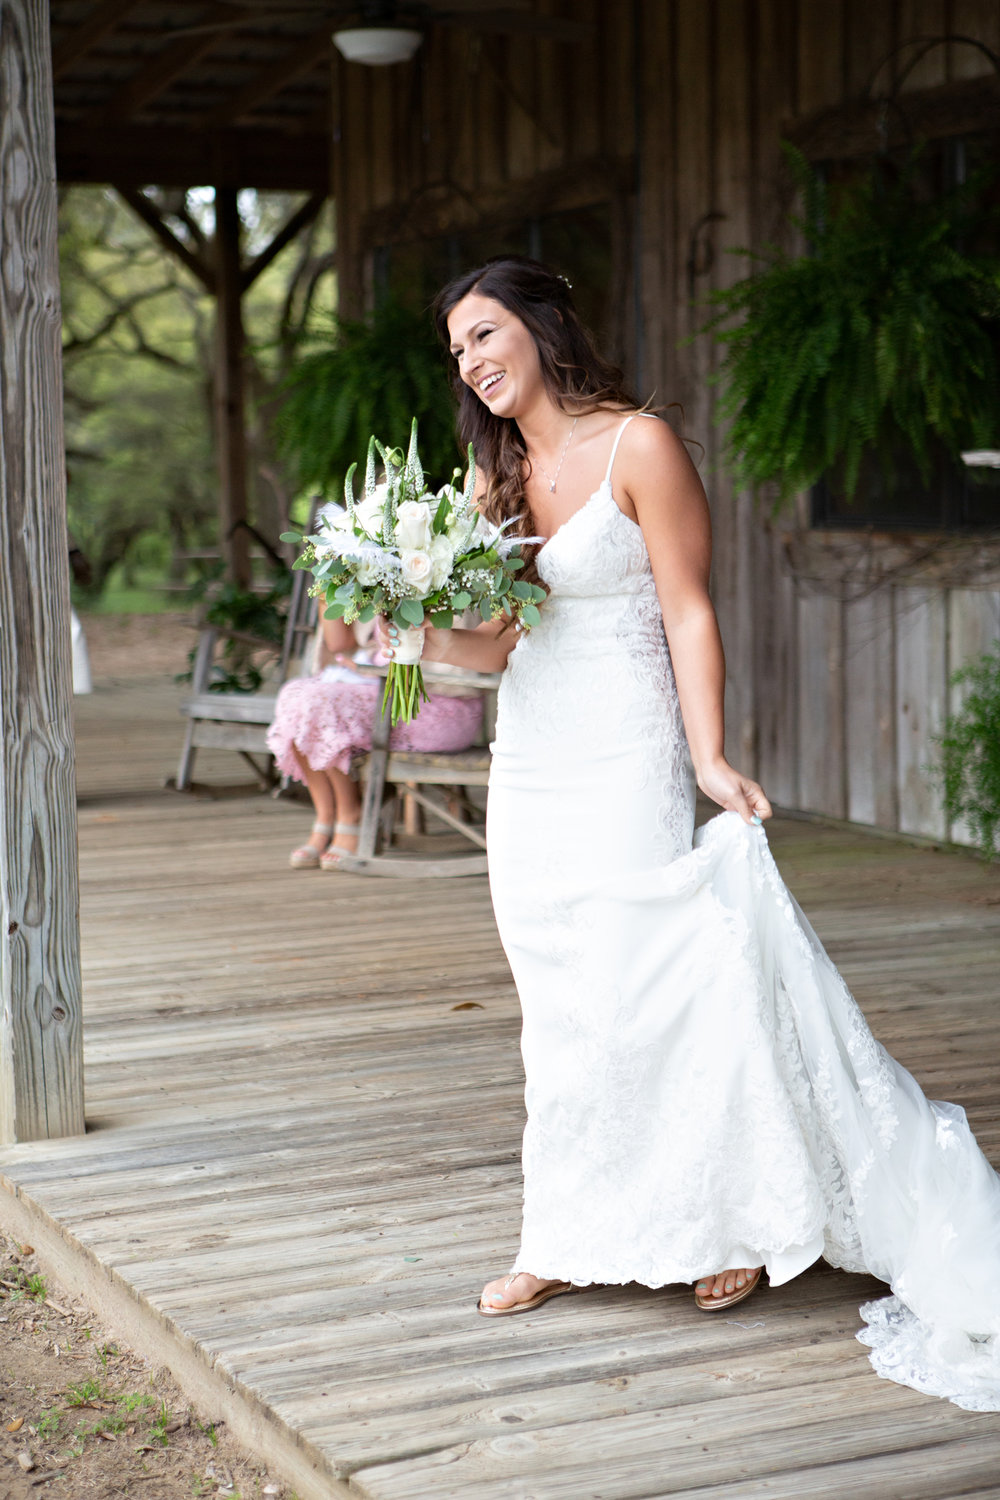 Fairhope-Alabama-Wedding-Photographers-Nick-Drollette-Photography-107.jpg